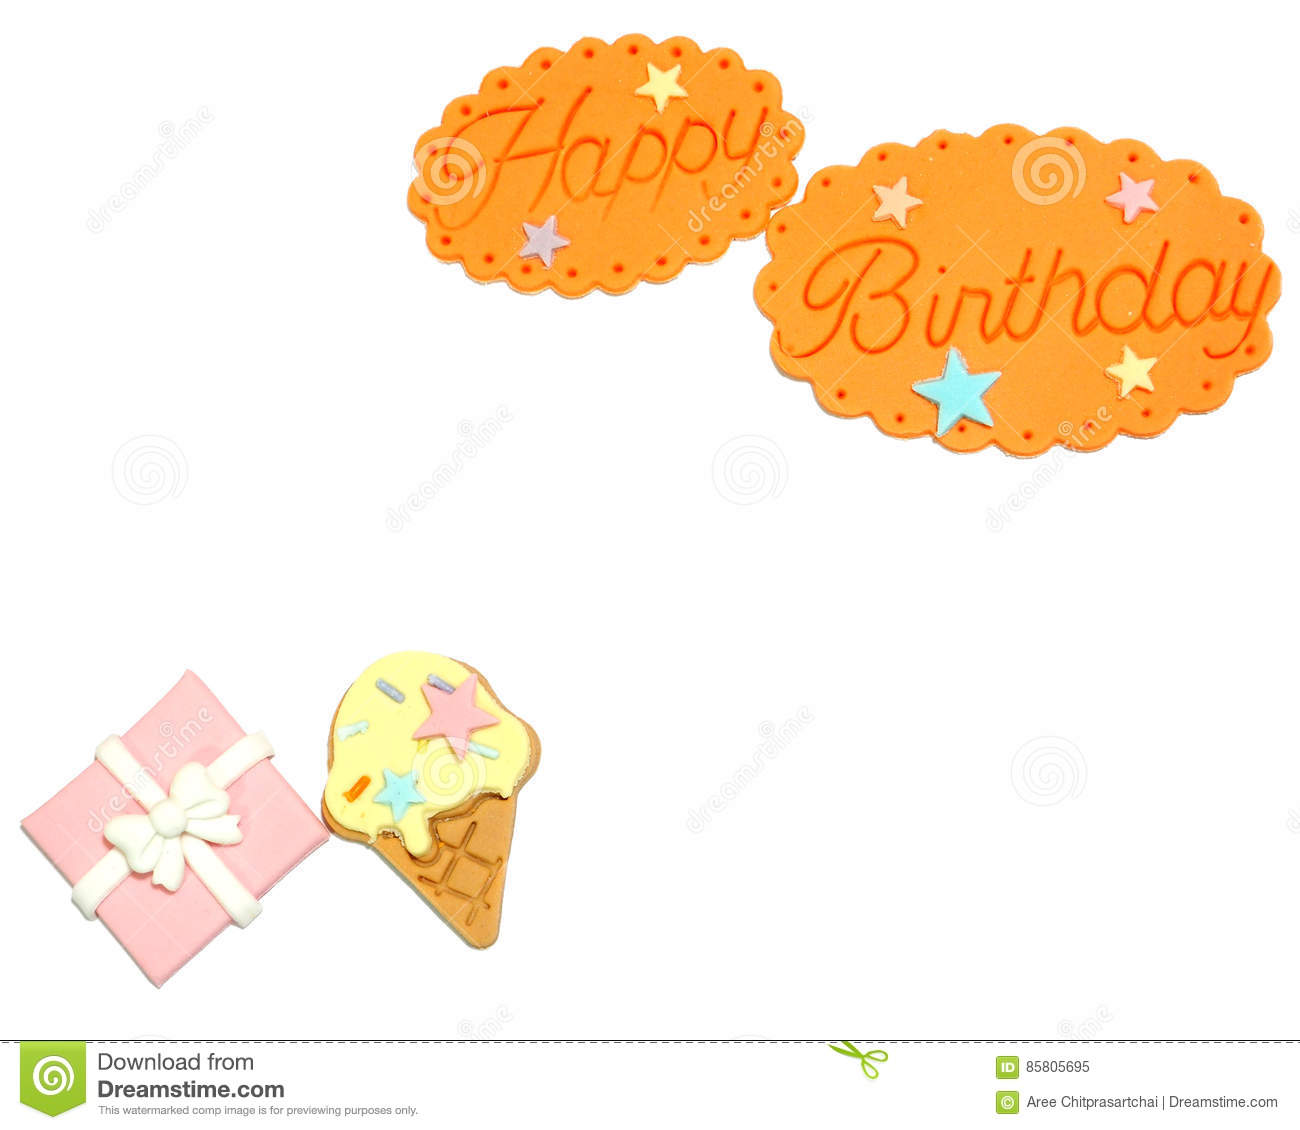 Happy birthday on white background,